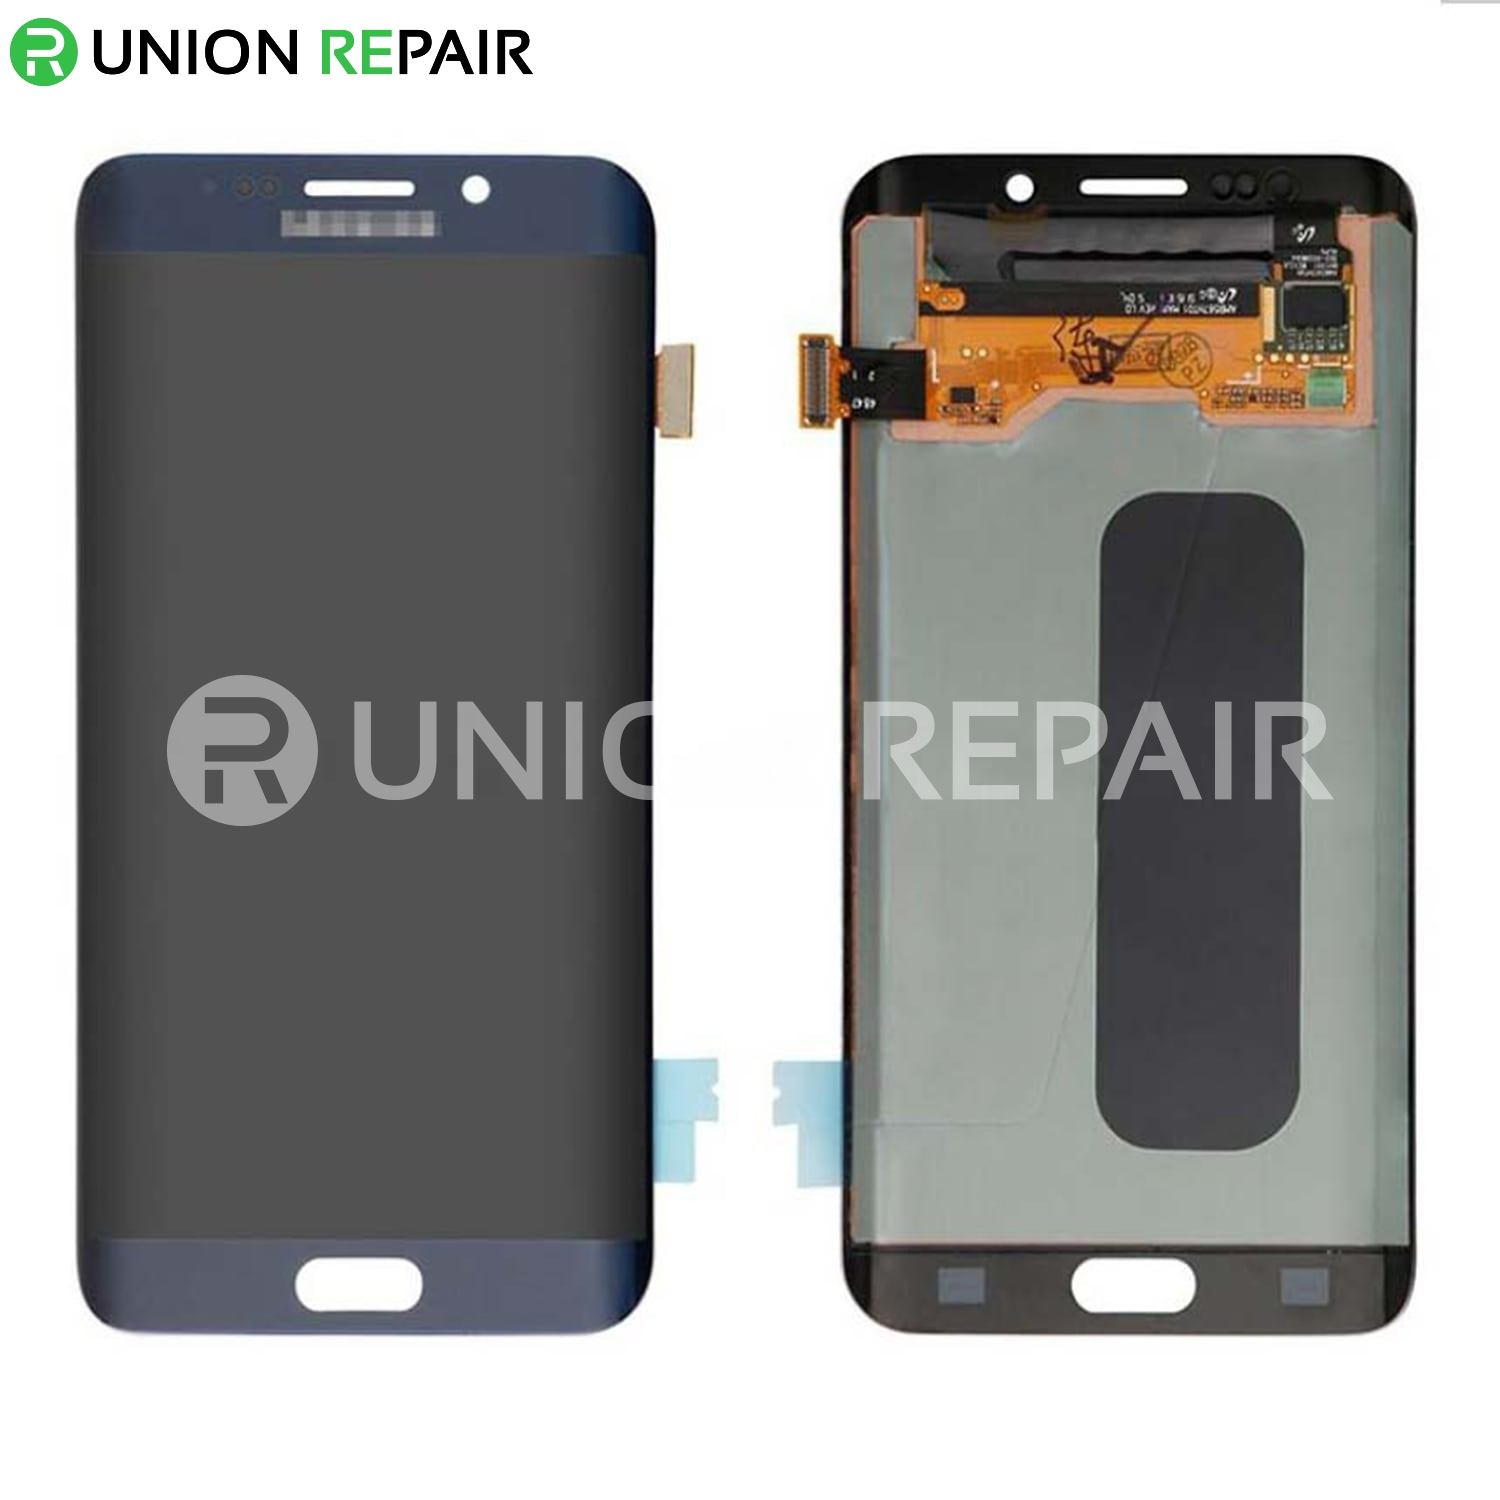 Replacement for Samsung Galaxy S6 Edge Plus SM-G928 Series LCD Screen with  Digitizer Assembly - Sapphire